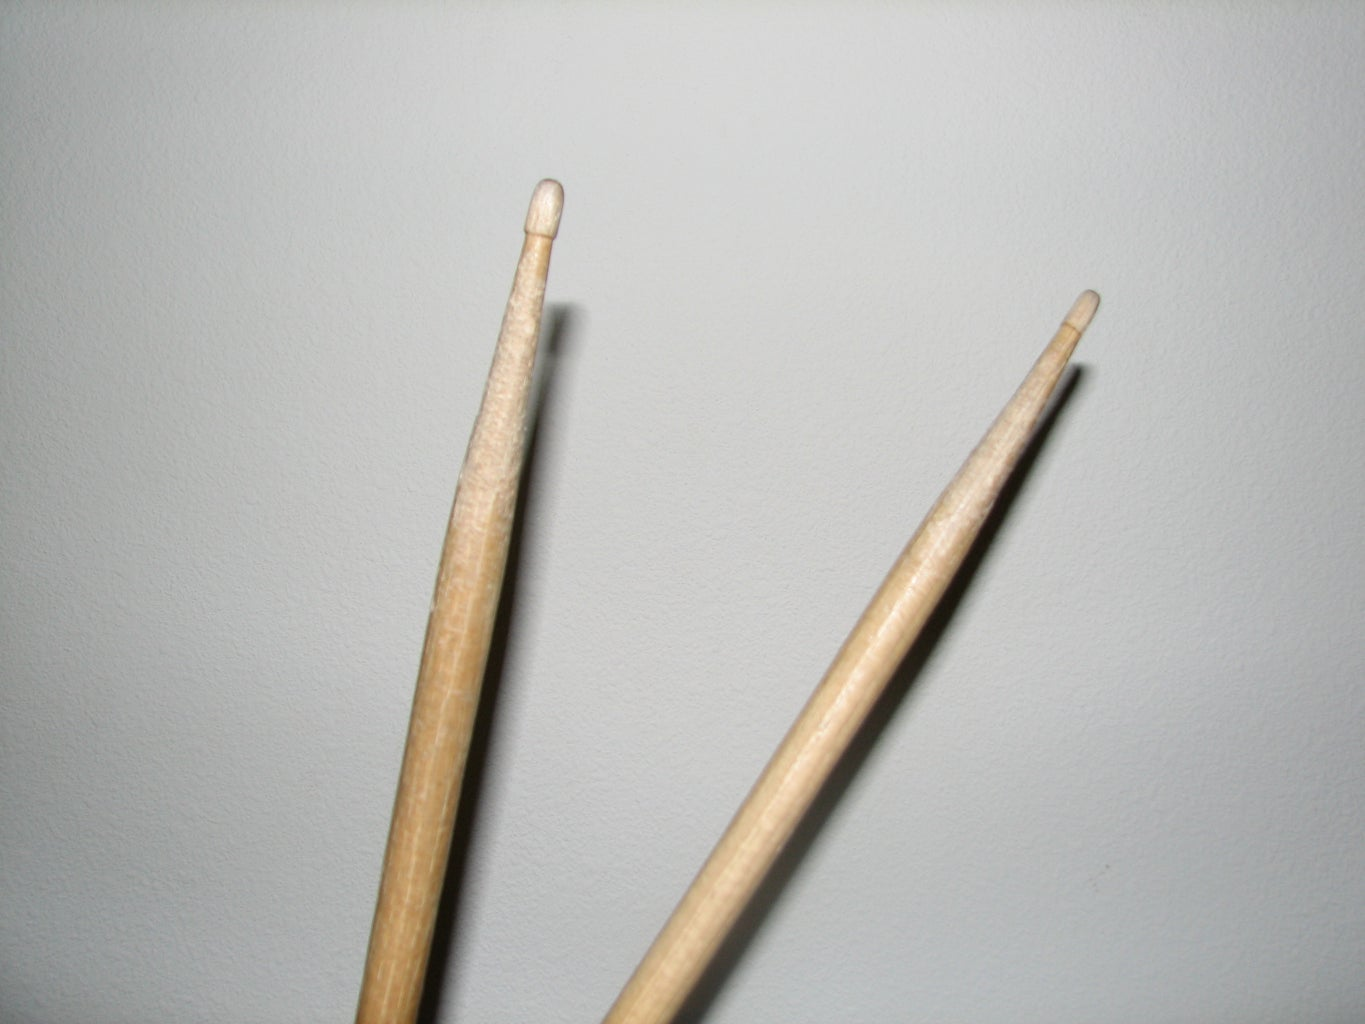 How to Play the Drums